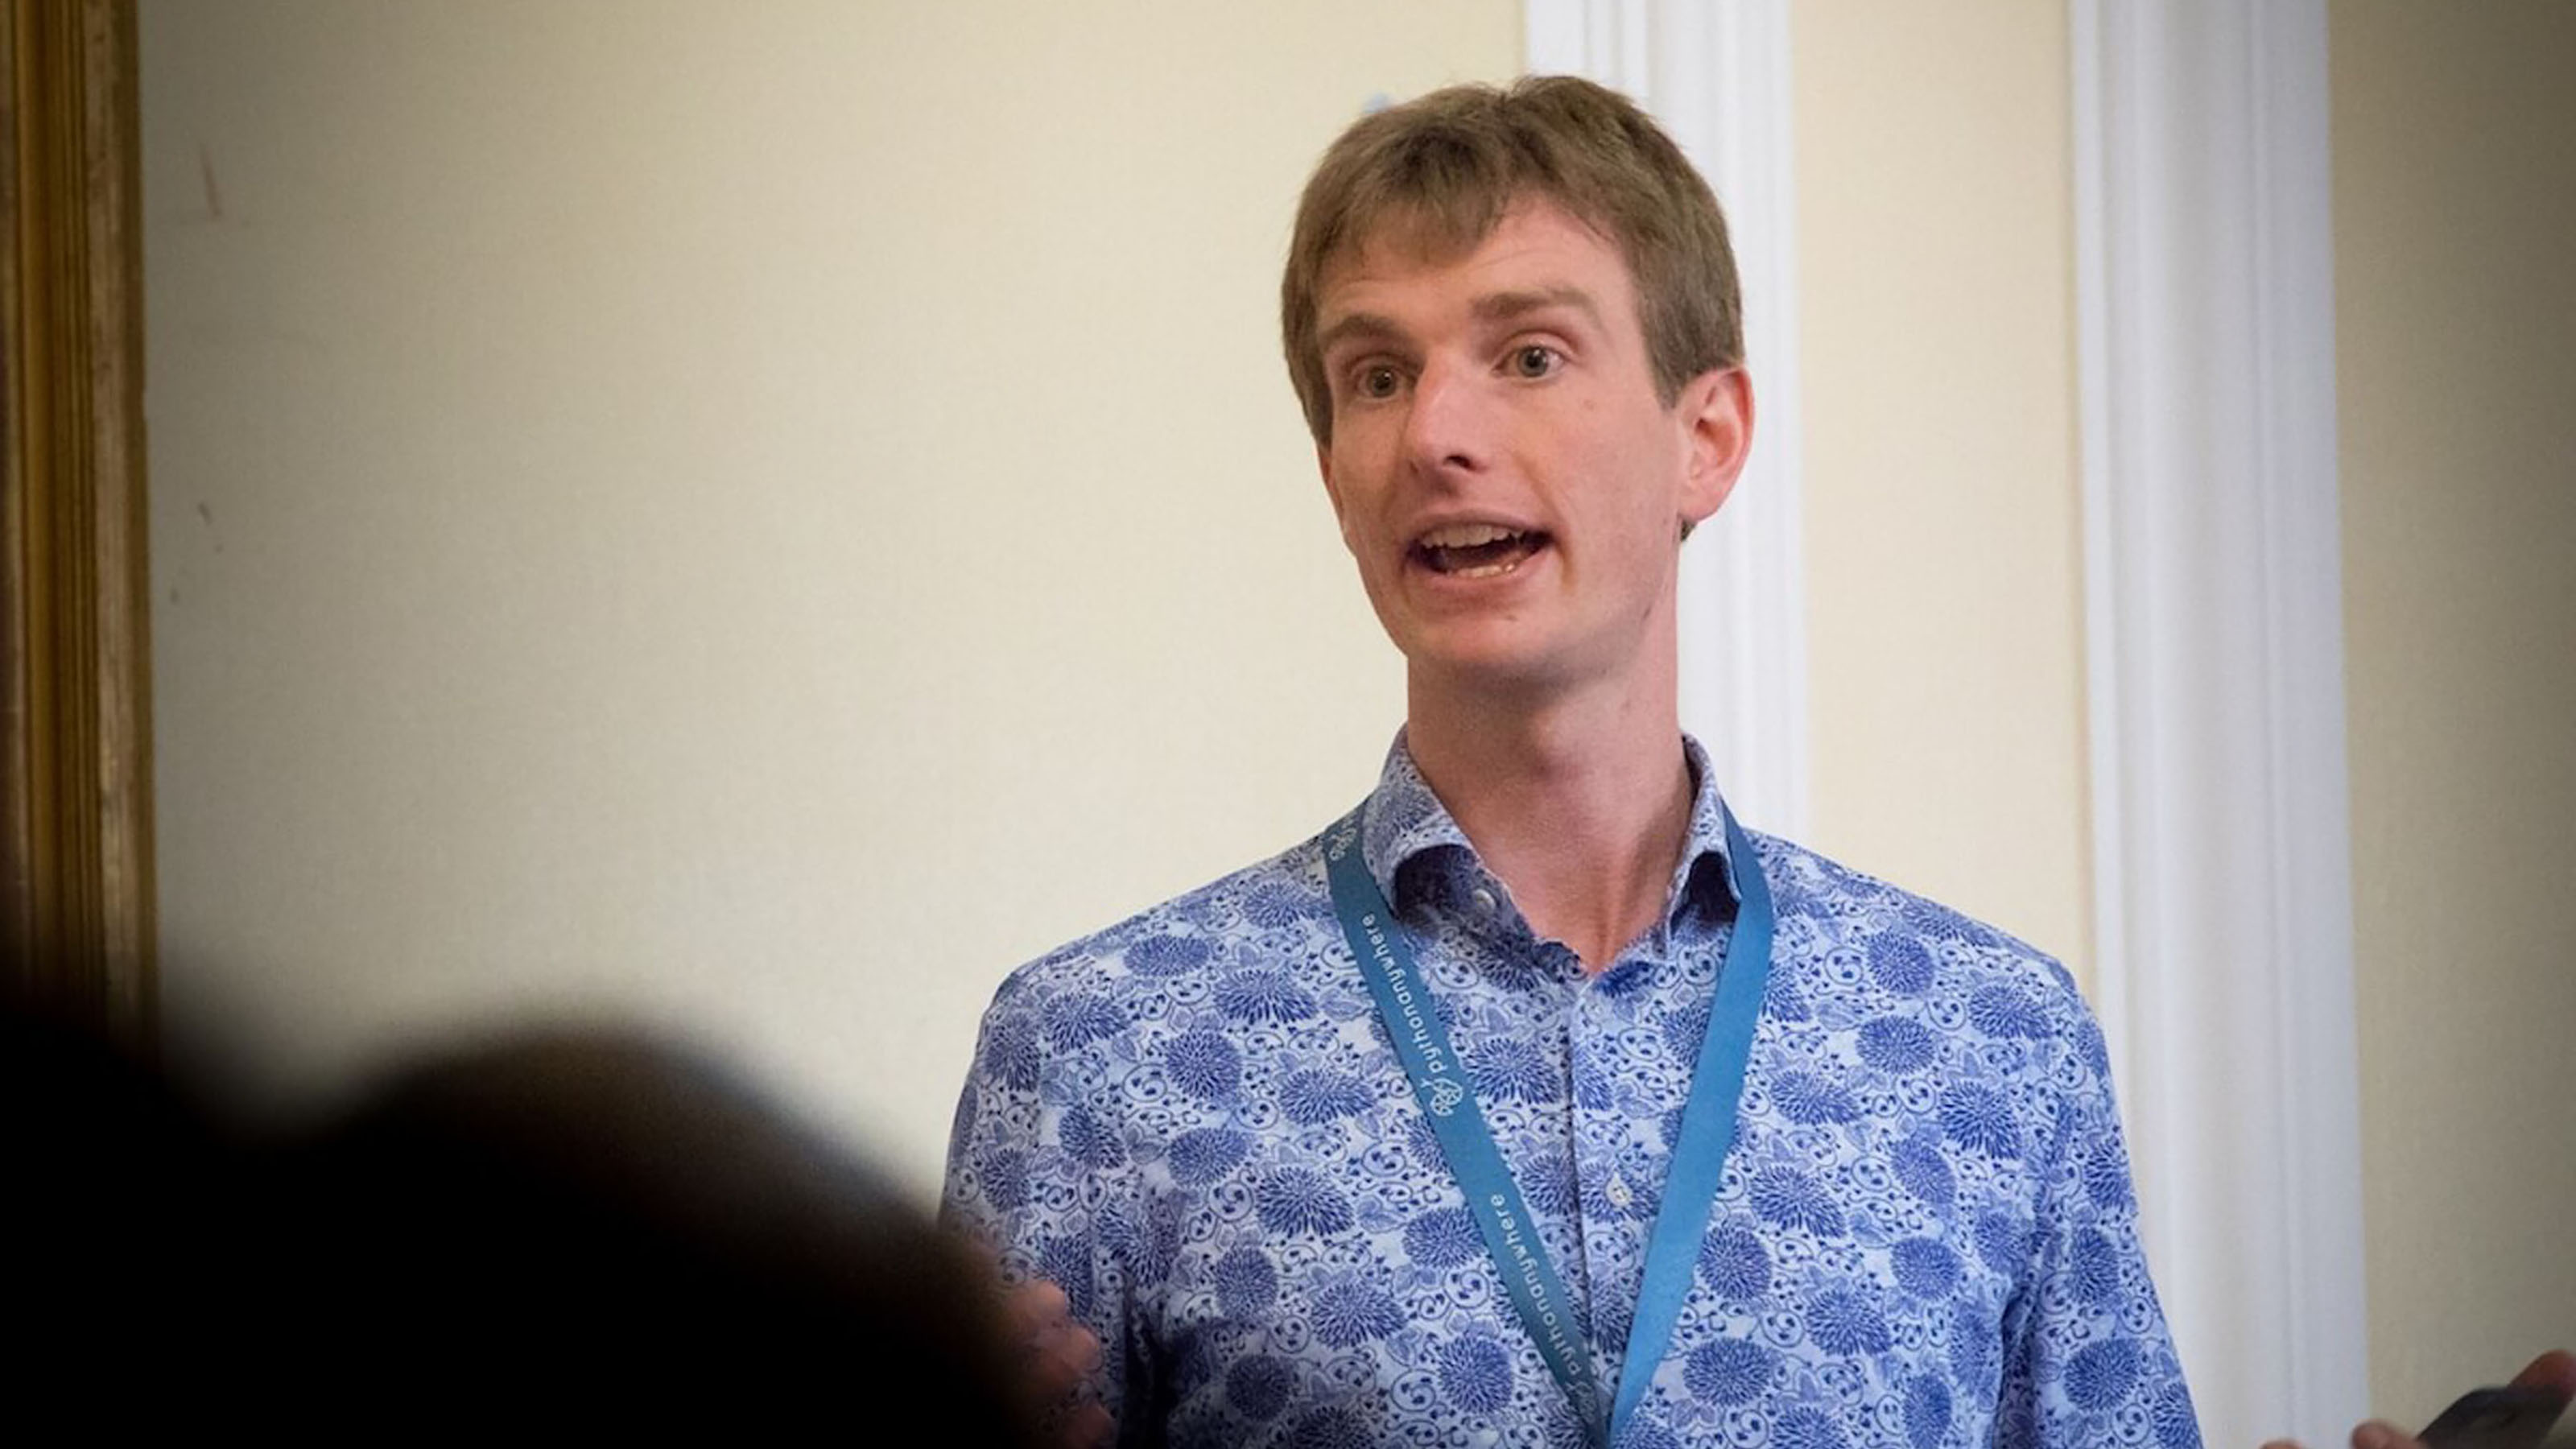 Osirium at Pycon: Ed Reveals the Patterns in our Pit of Success